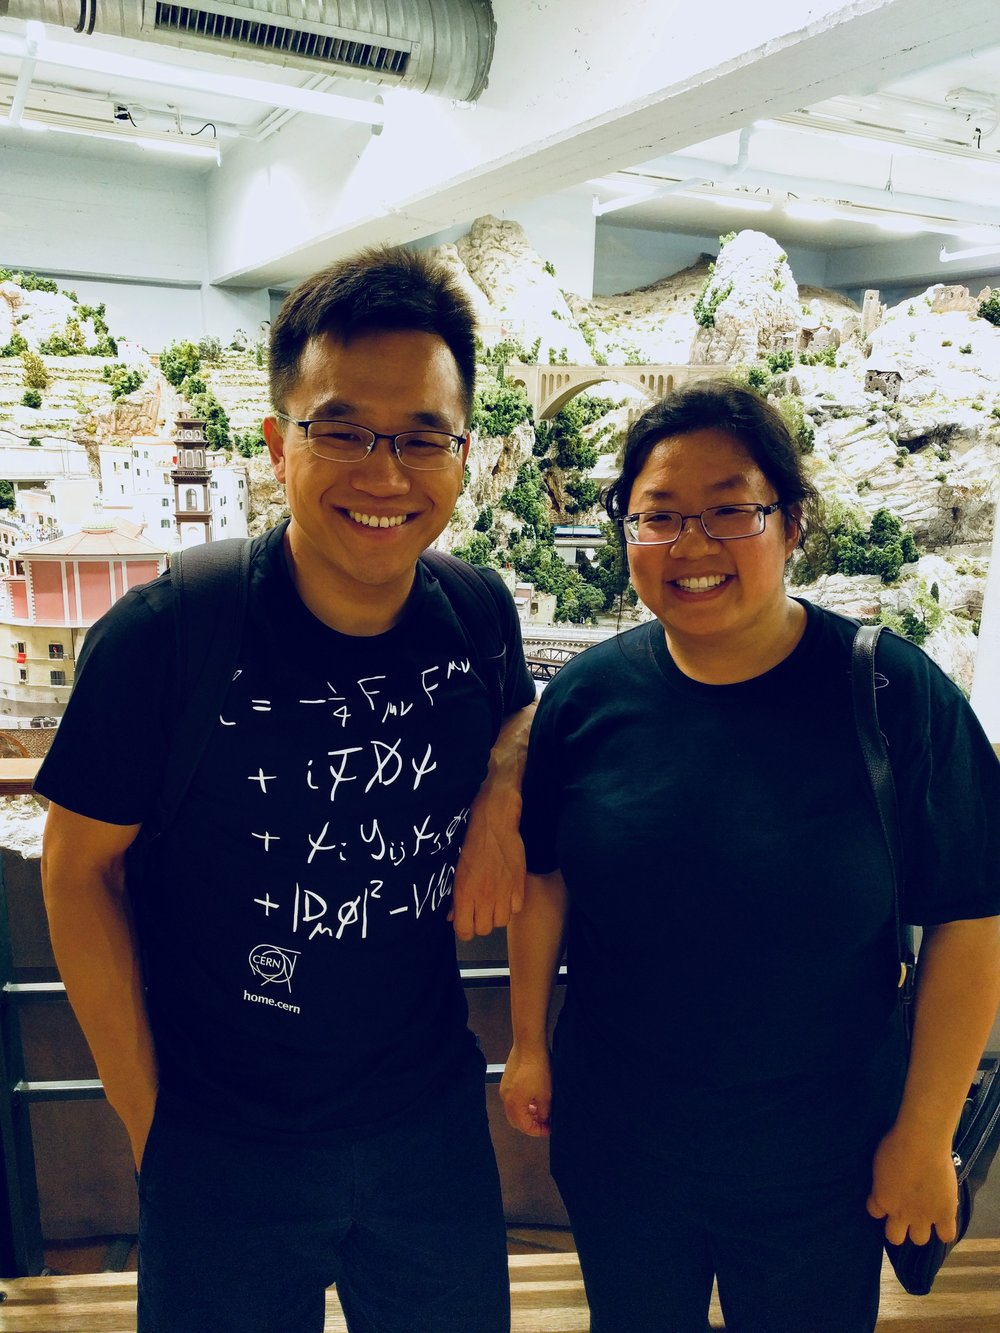 Adrian Cho and Jennifer Hsiao at the miniature museum in Hamburg, Germany.